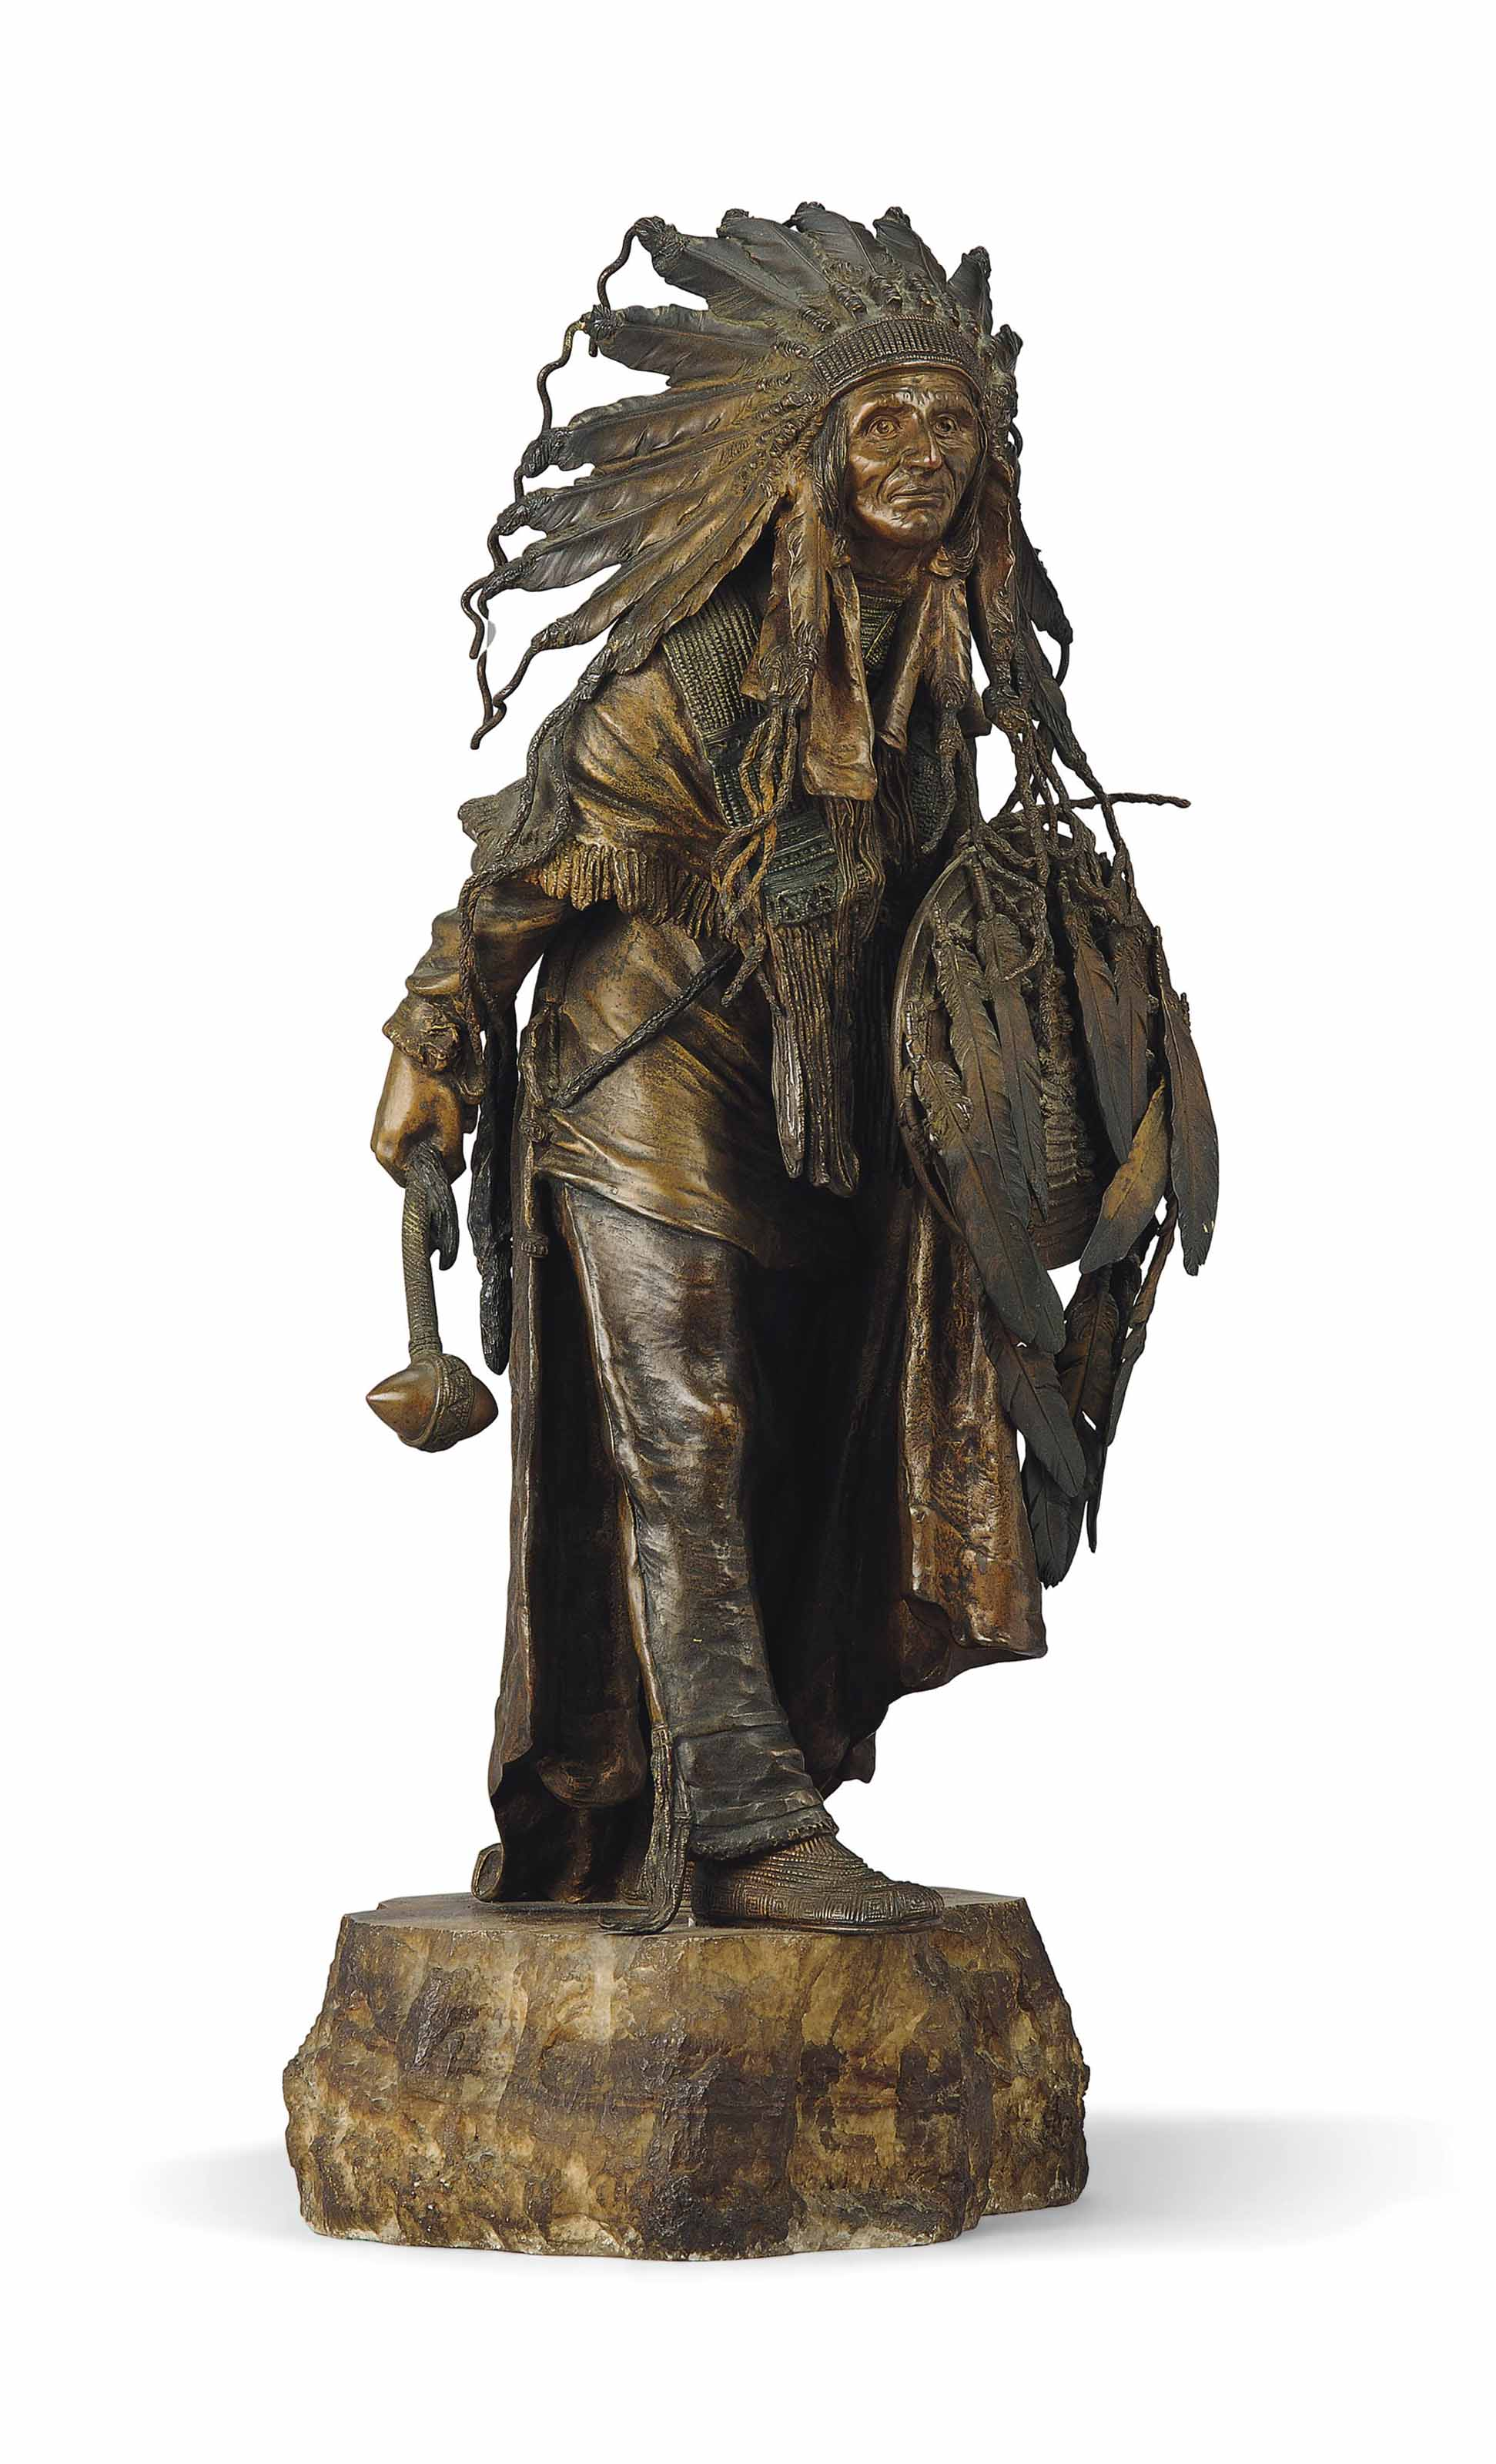 AN AUSTRIAN COLD-PAINTED BRONZE MODEL OF A NATIVE AMERICAN CHIEF ENTITLED 'AMERIKA'